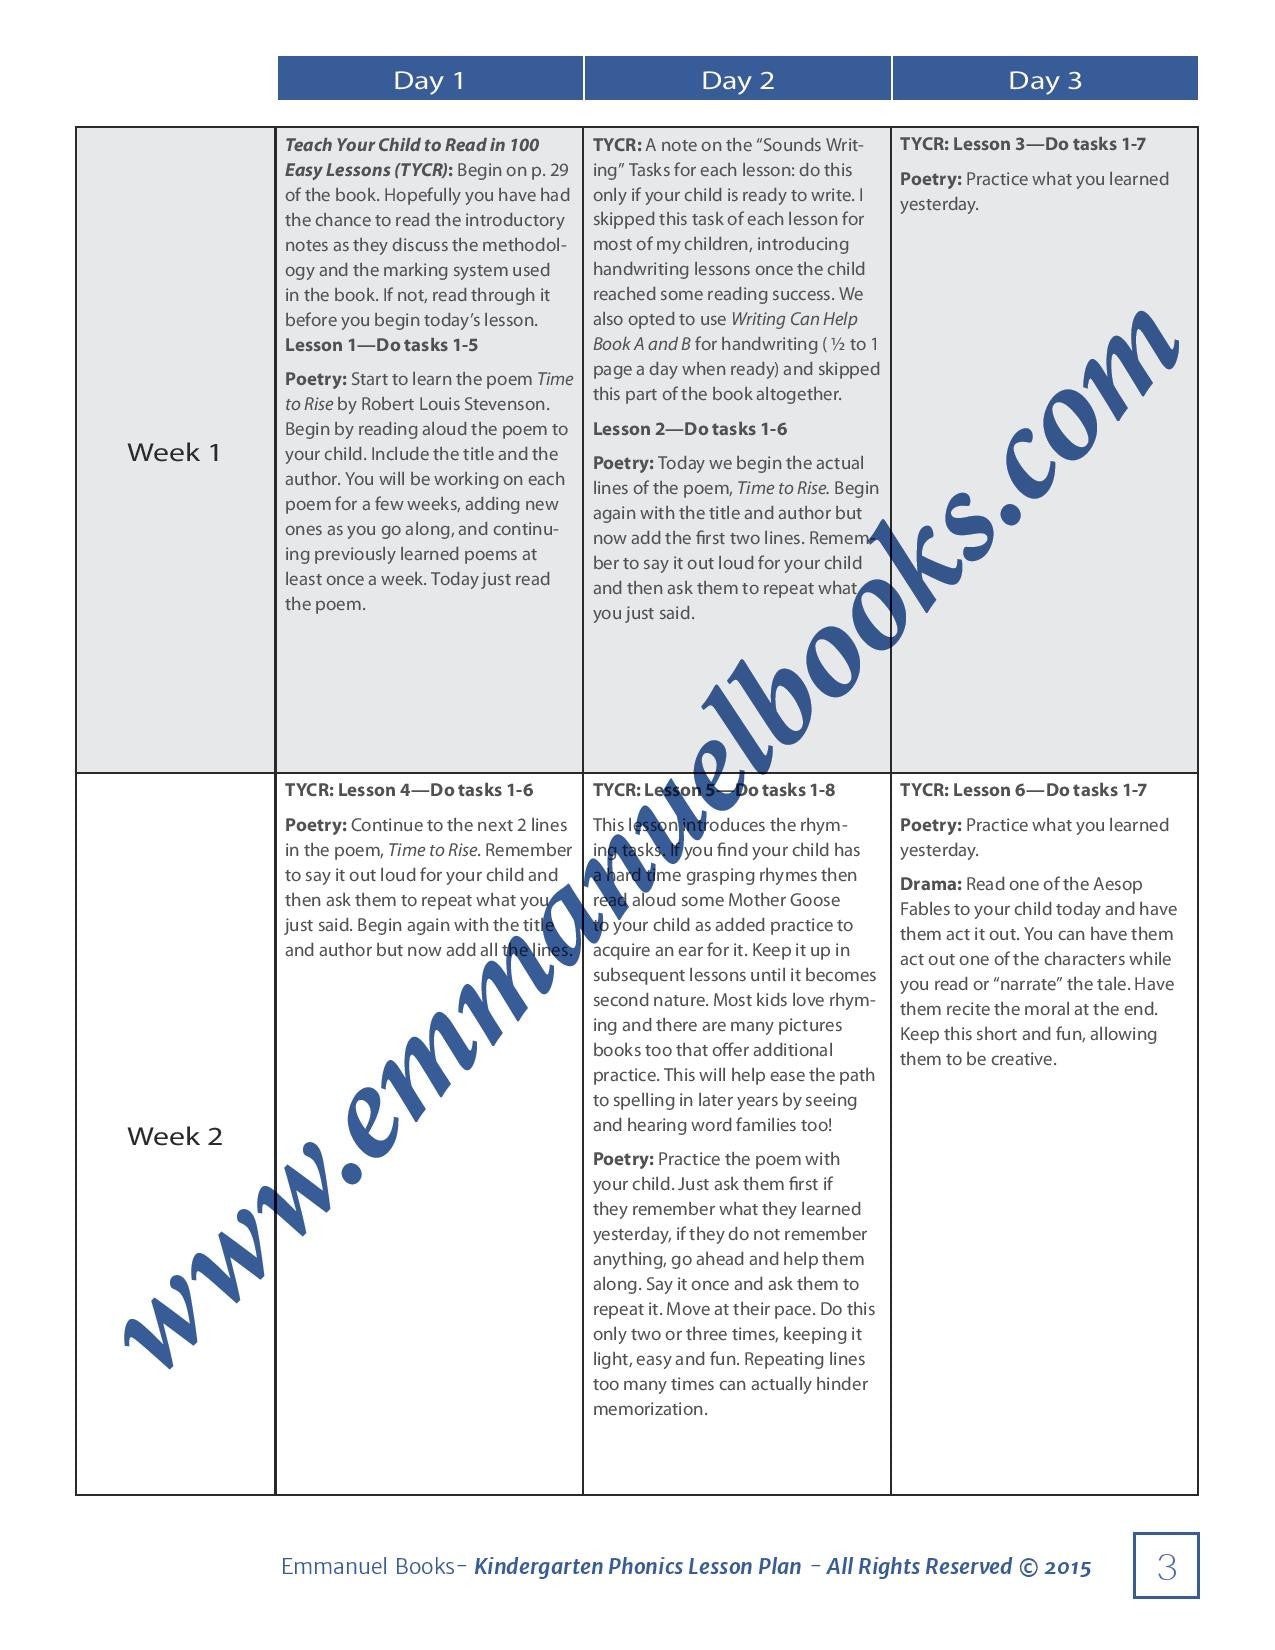 Emmanuel Books Kindergarten Language Arts Lesson Plan